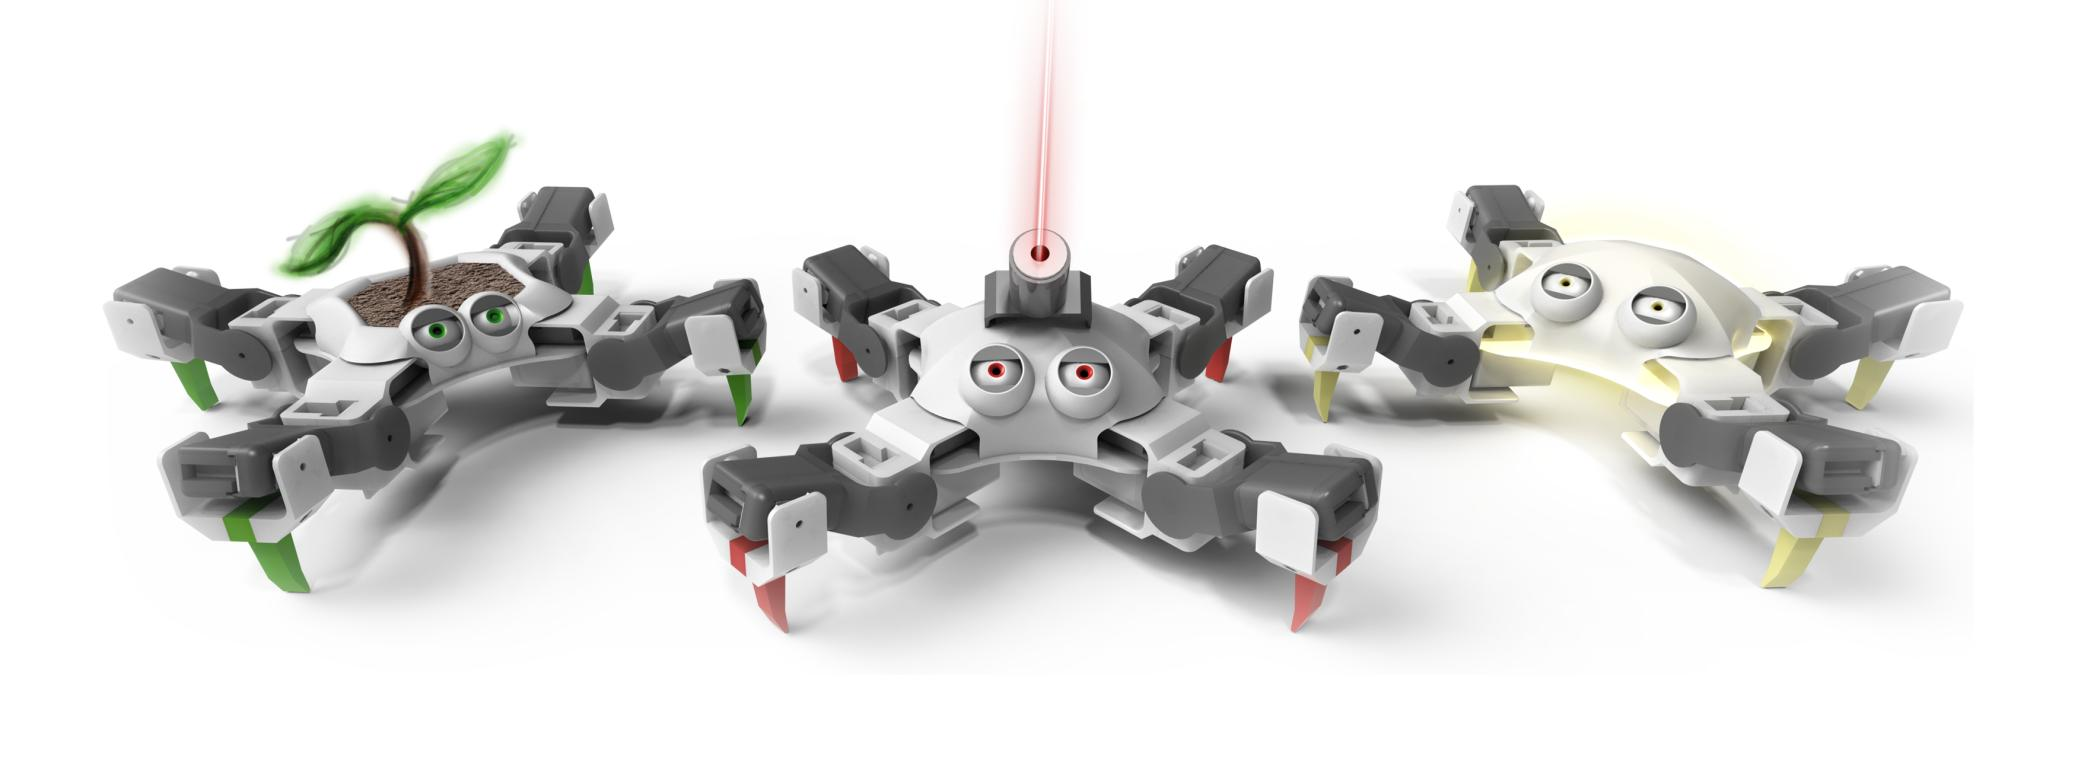 EngiMake QuadBot - Engaging, Open-Source Robot kits